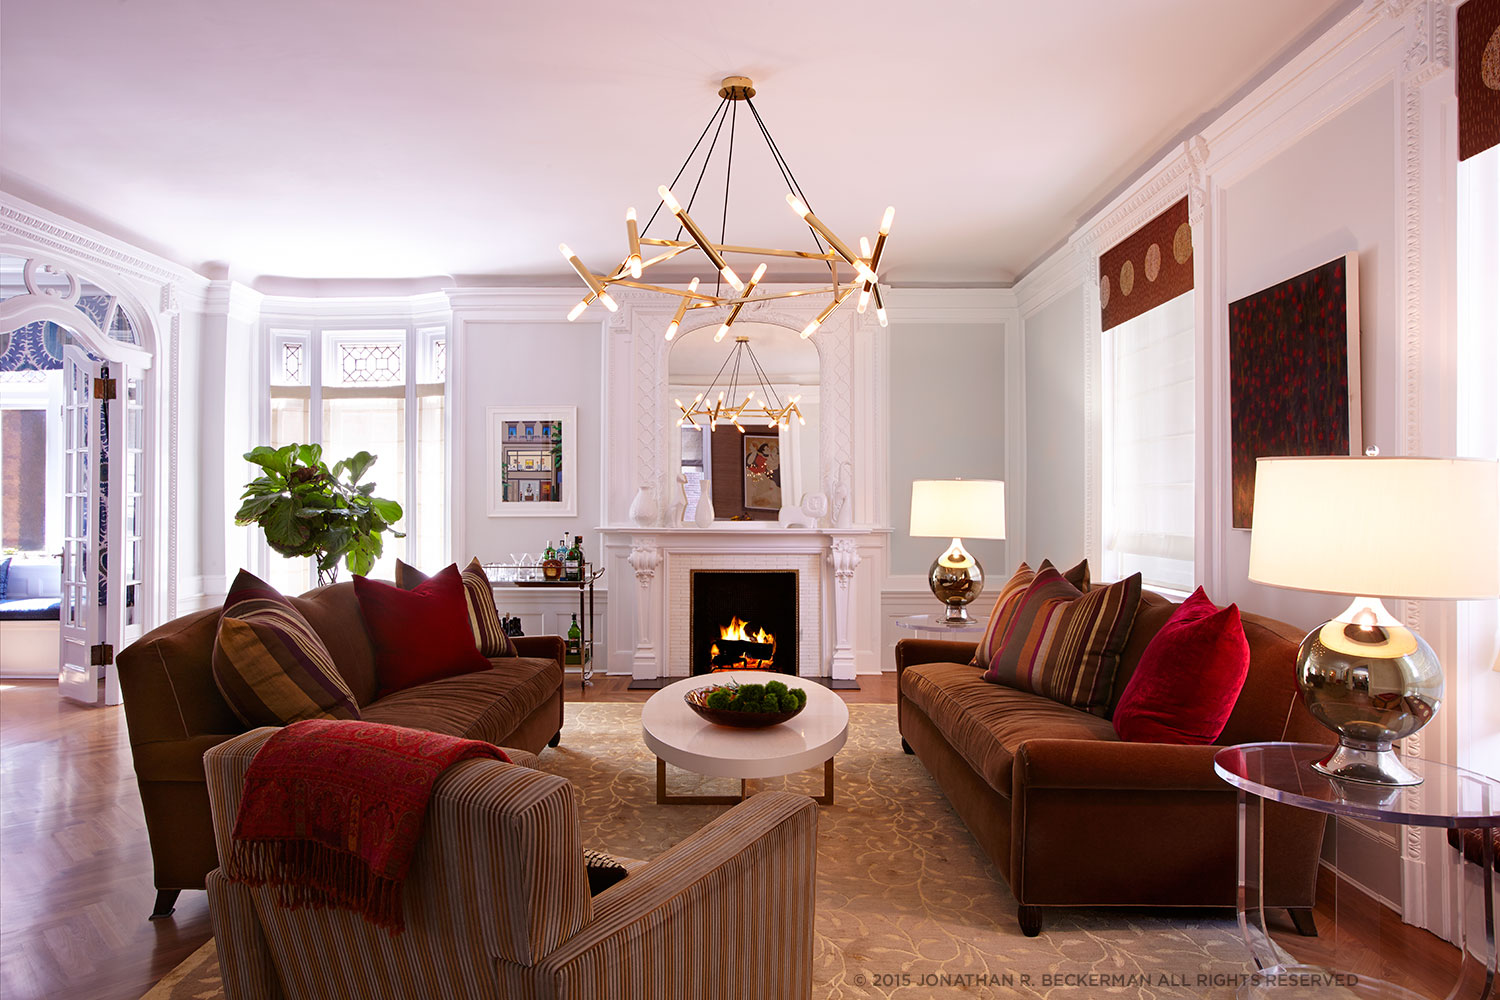 designer bella desginers top decorilla interior york designers online new decorating nyc